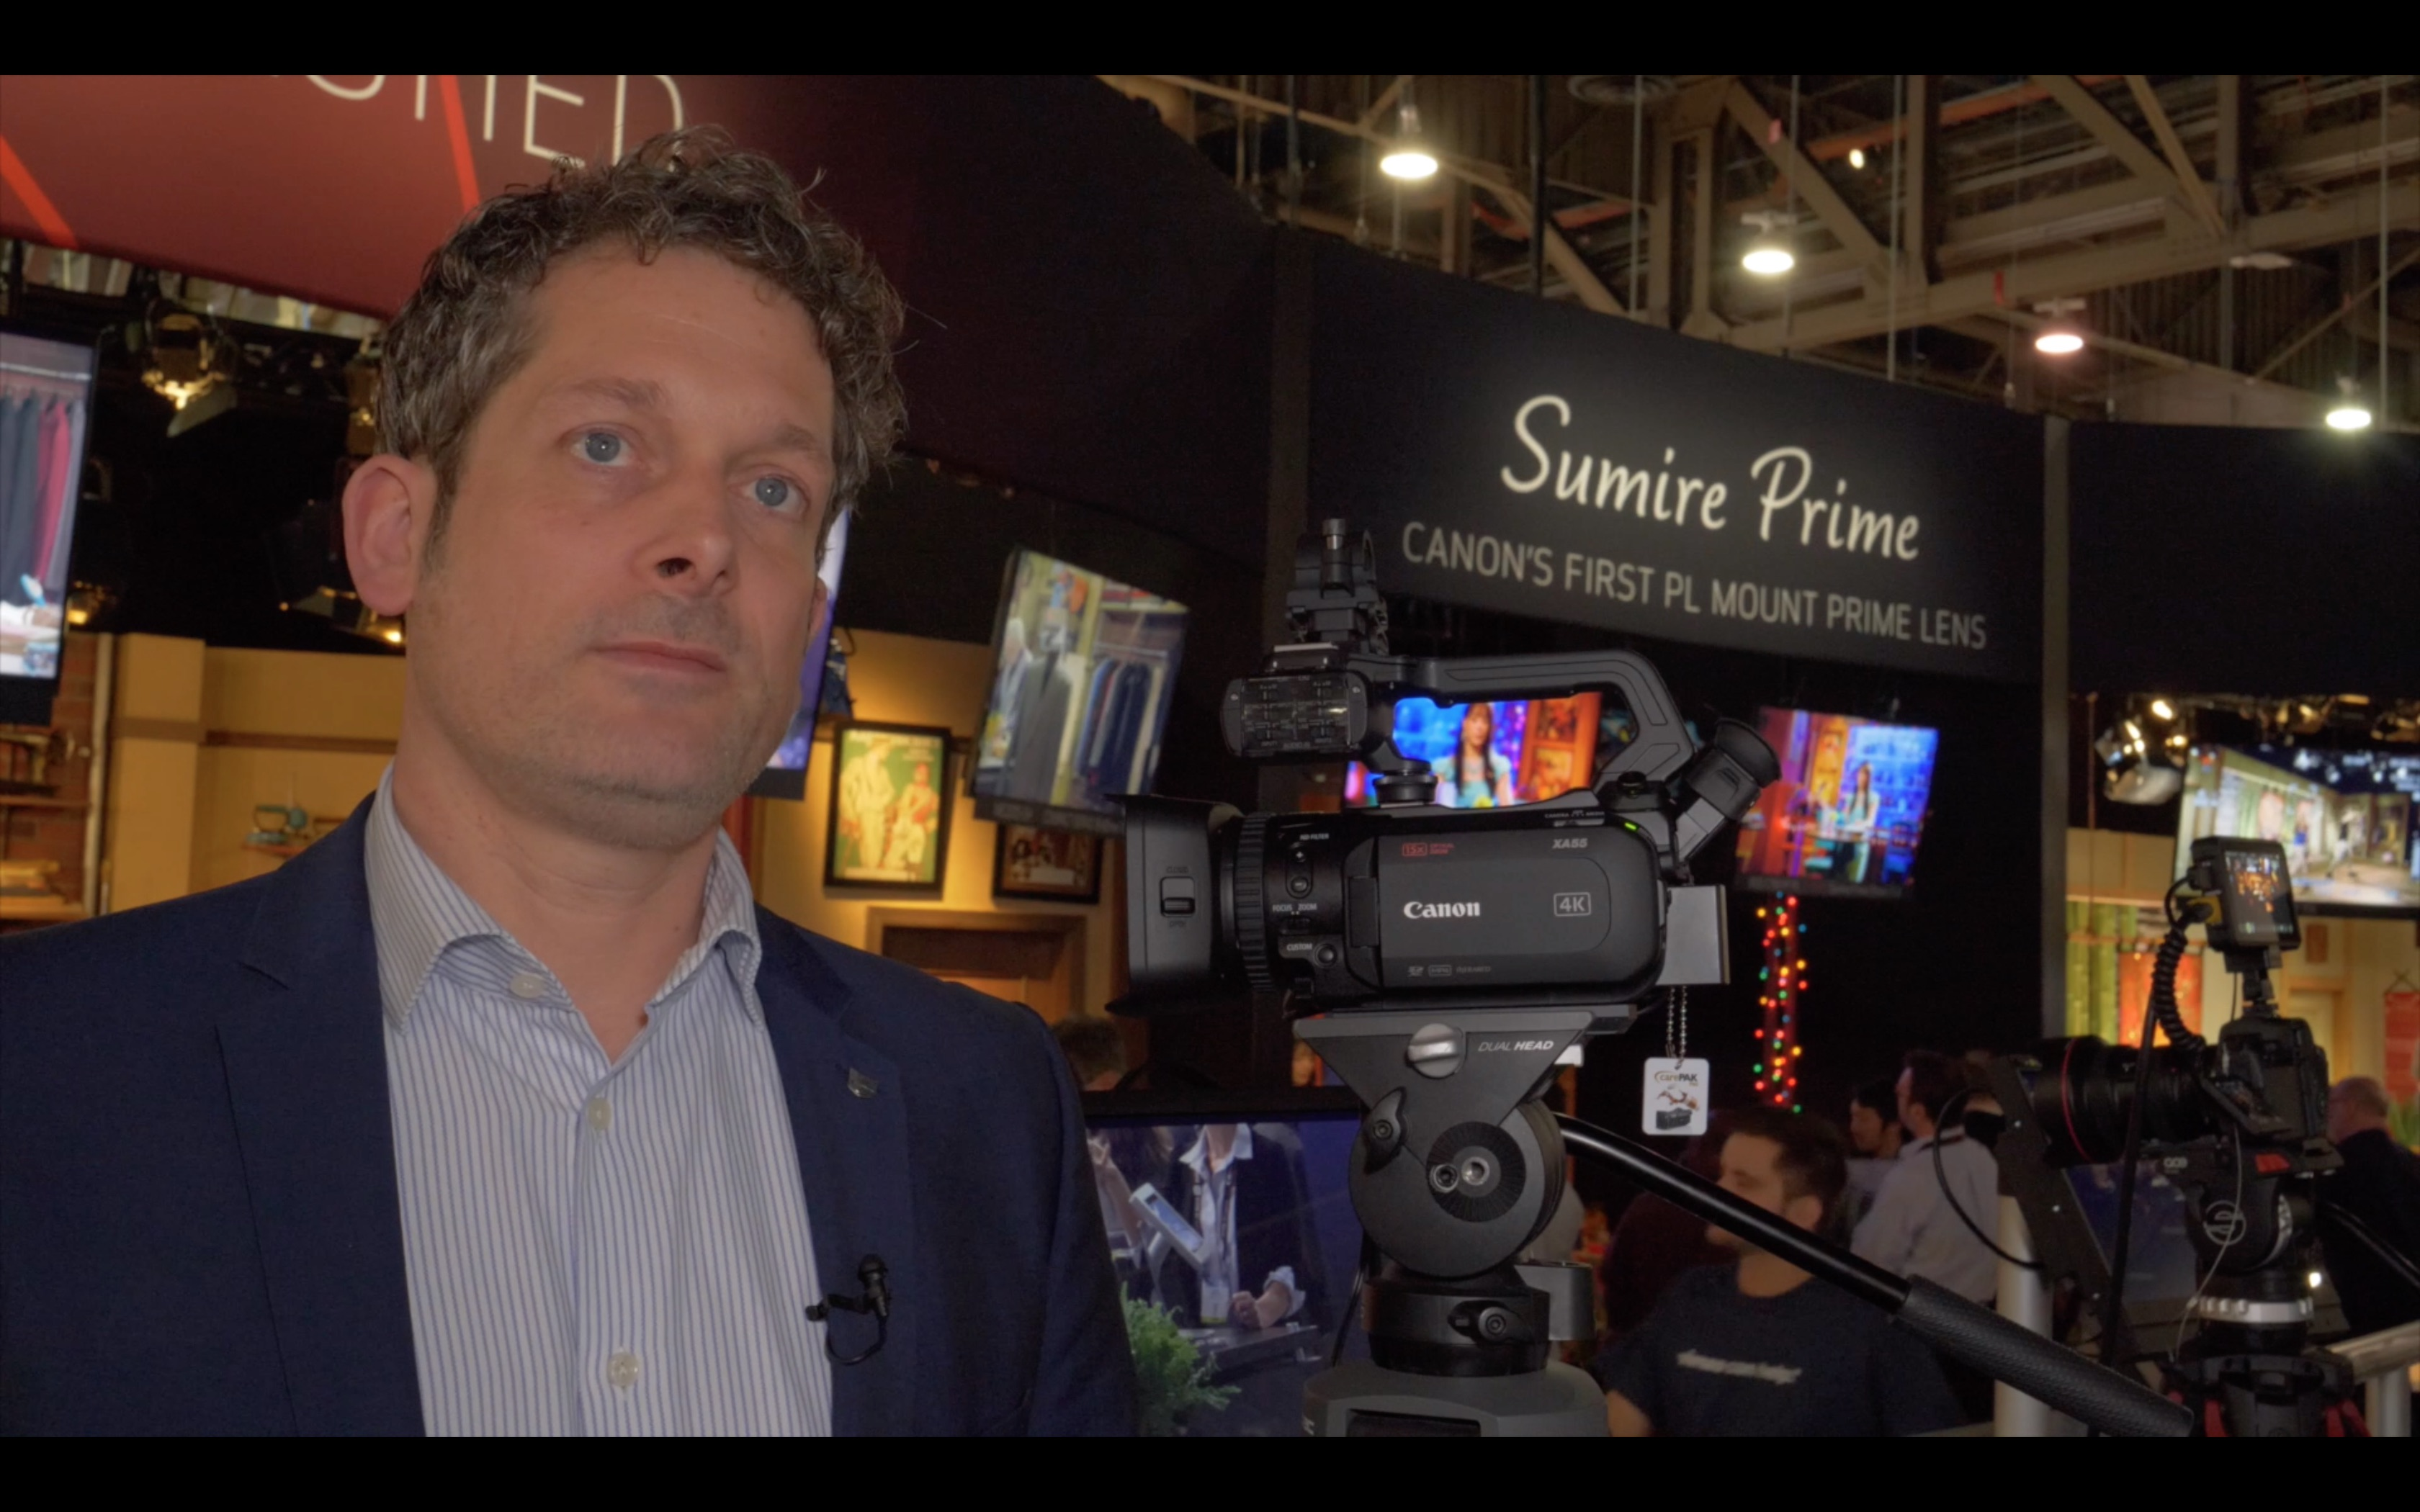 NAB video: Cano XA55 - small professional camcorder with SDI, XLR, Dual Pixel AF and others // NAB 2